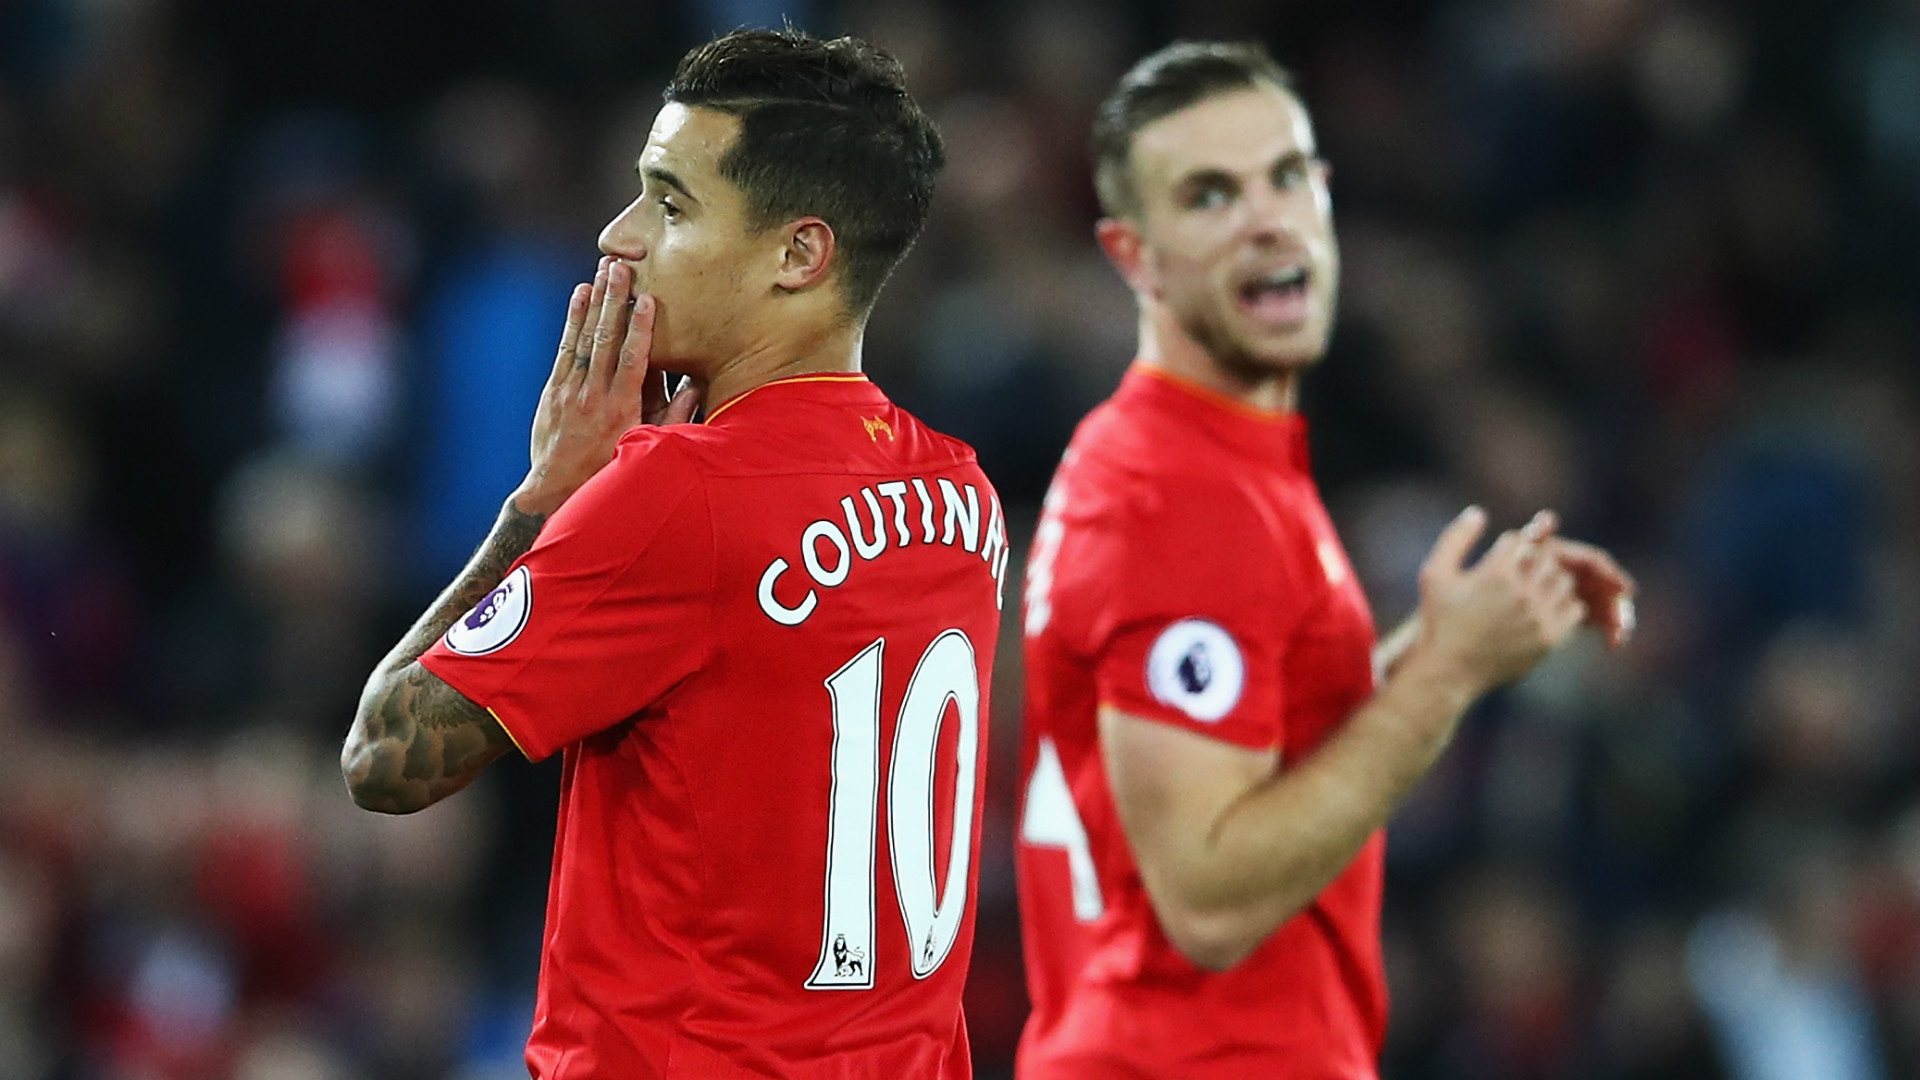 'Coutinho's time at Liverpool has passed' – Henderson doubts 'exceptional' playmaker will return